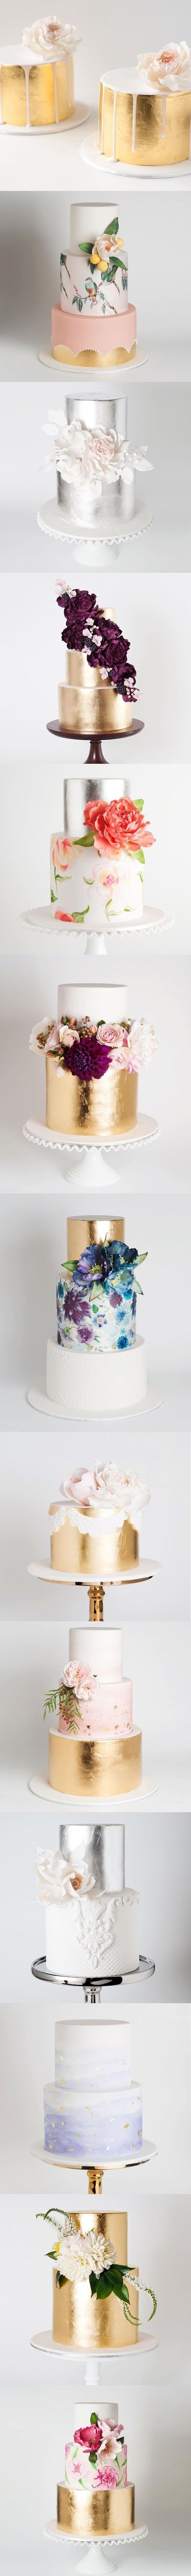 Cakes like jewellery - my kind of wedding cakes! Bring on the metallics :)